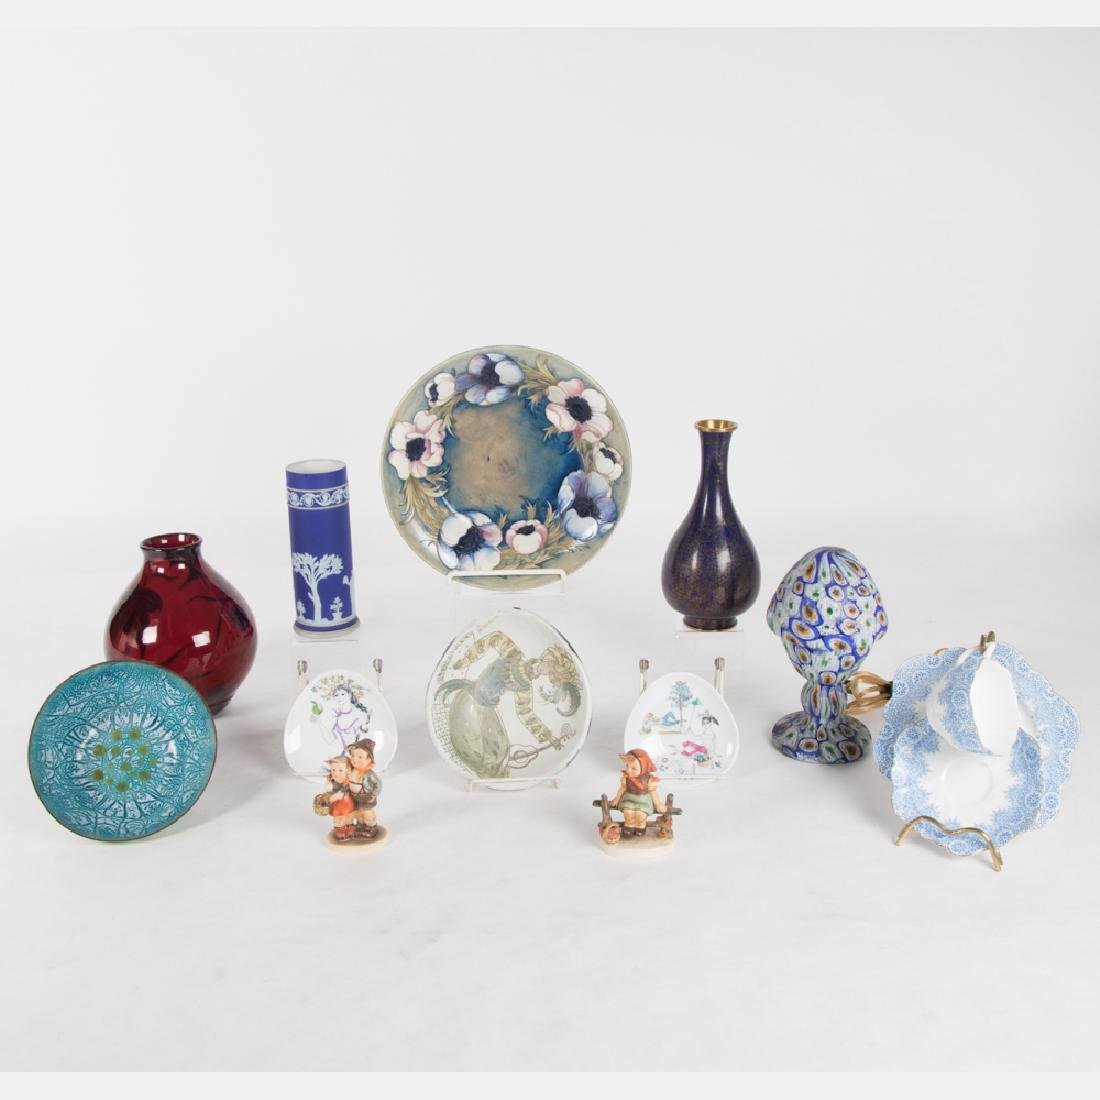 A Miscellaneous Collection of Ceramic, Glass and